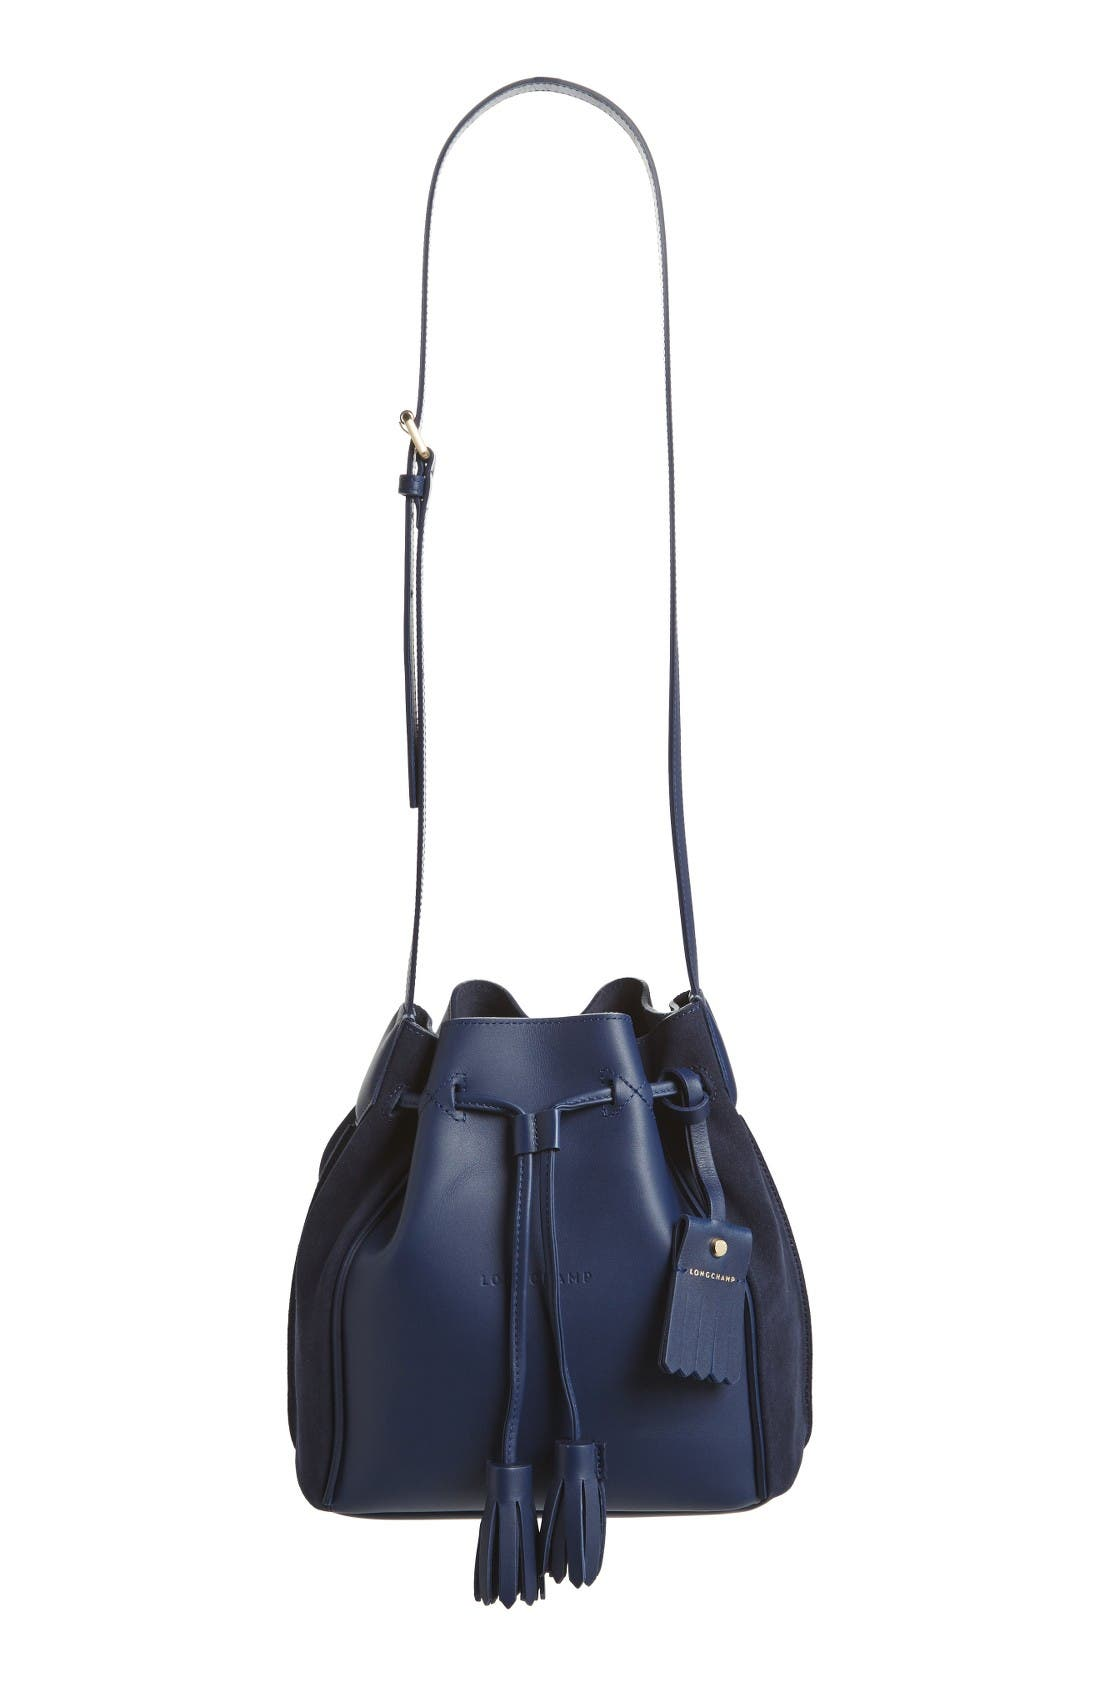 Alternate Image 1 Selected - Longchamp Penelope Fantasie Leather Bucket Bag